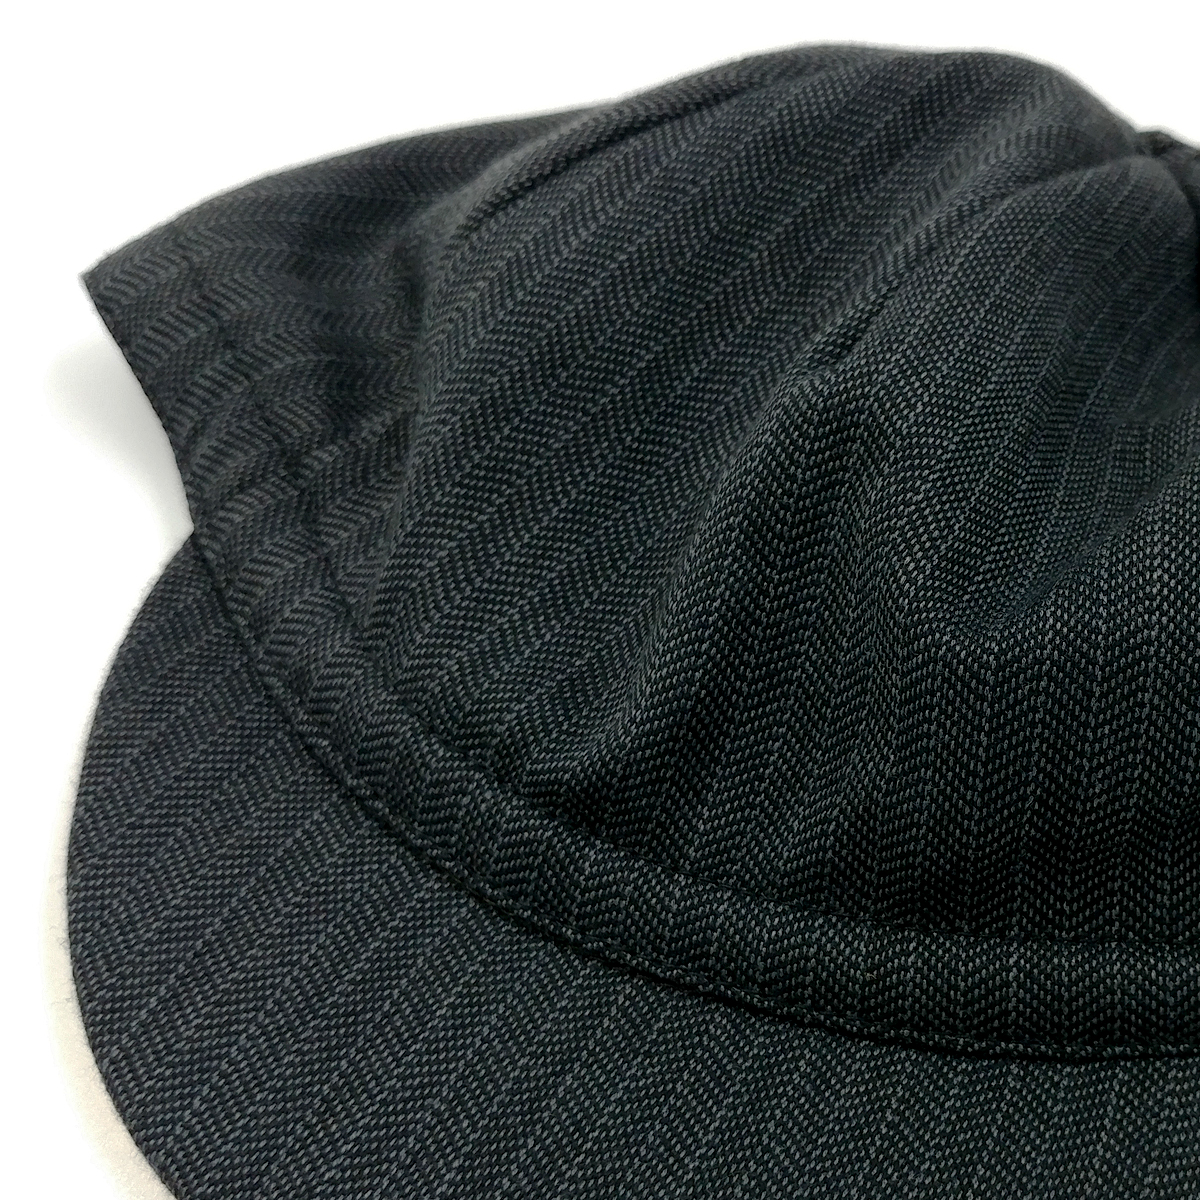 cycling cap - greyherringonewool4